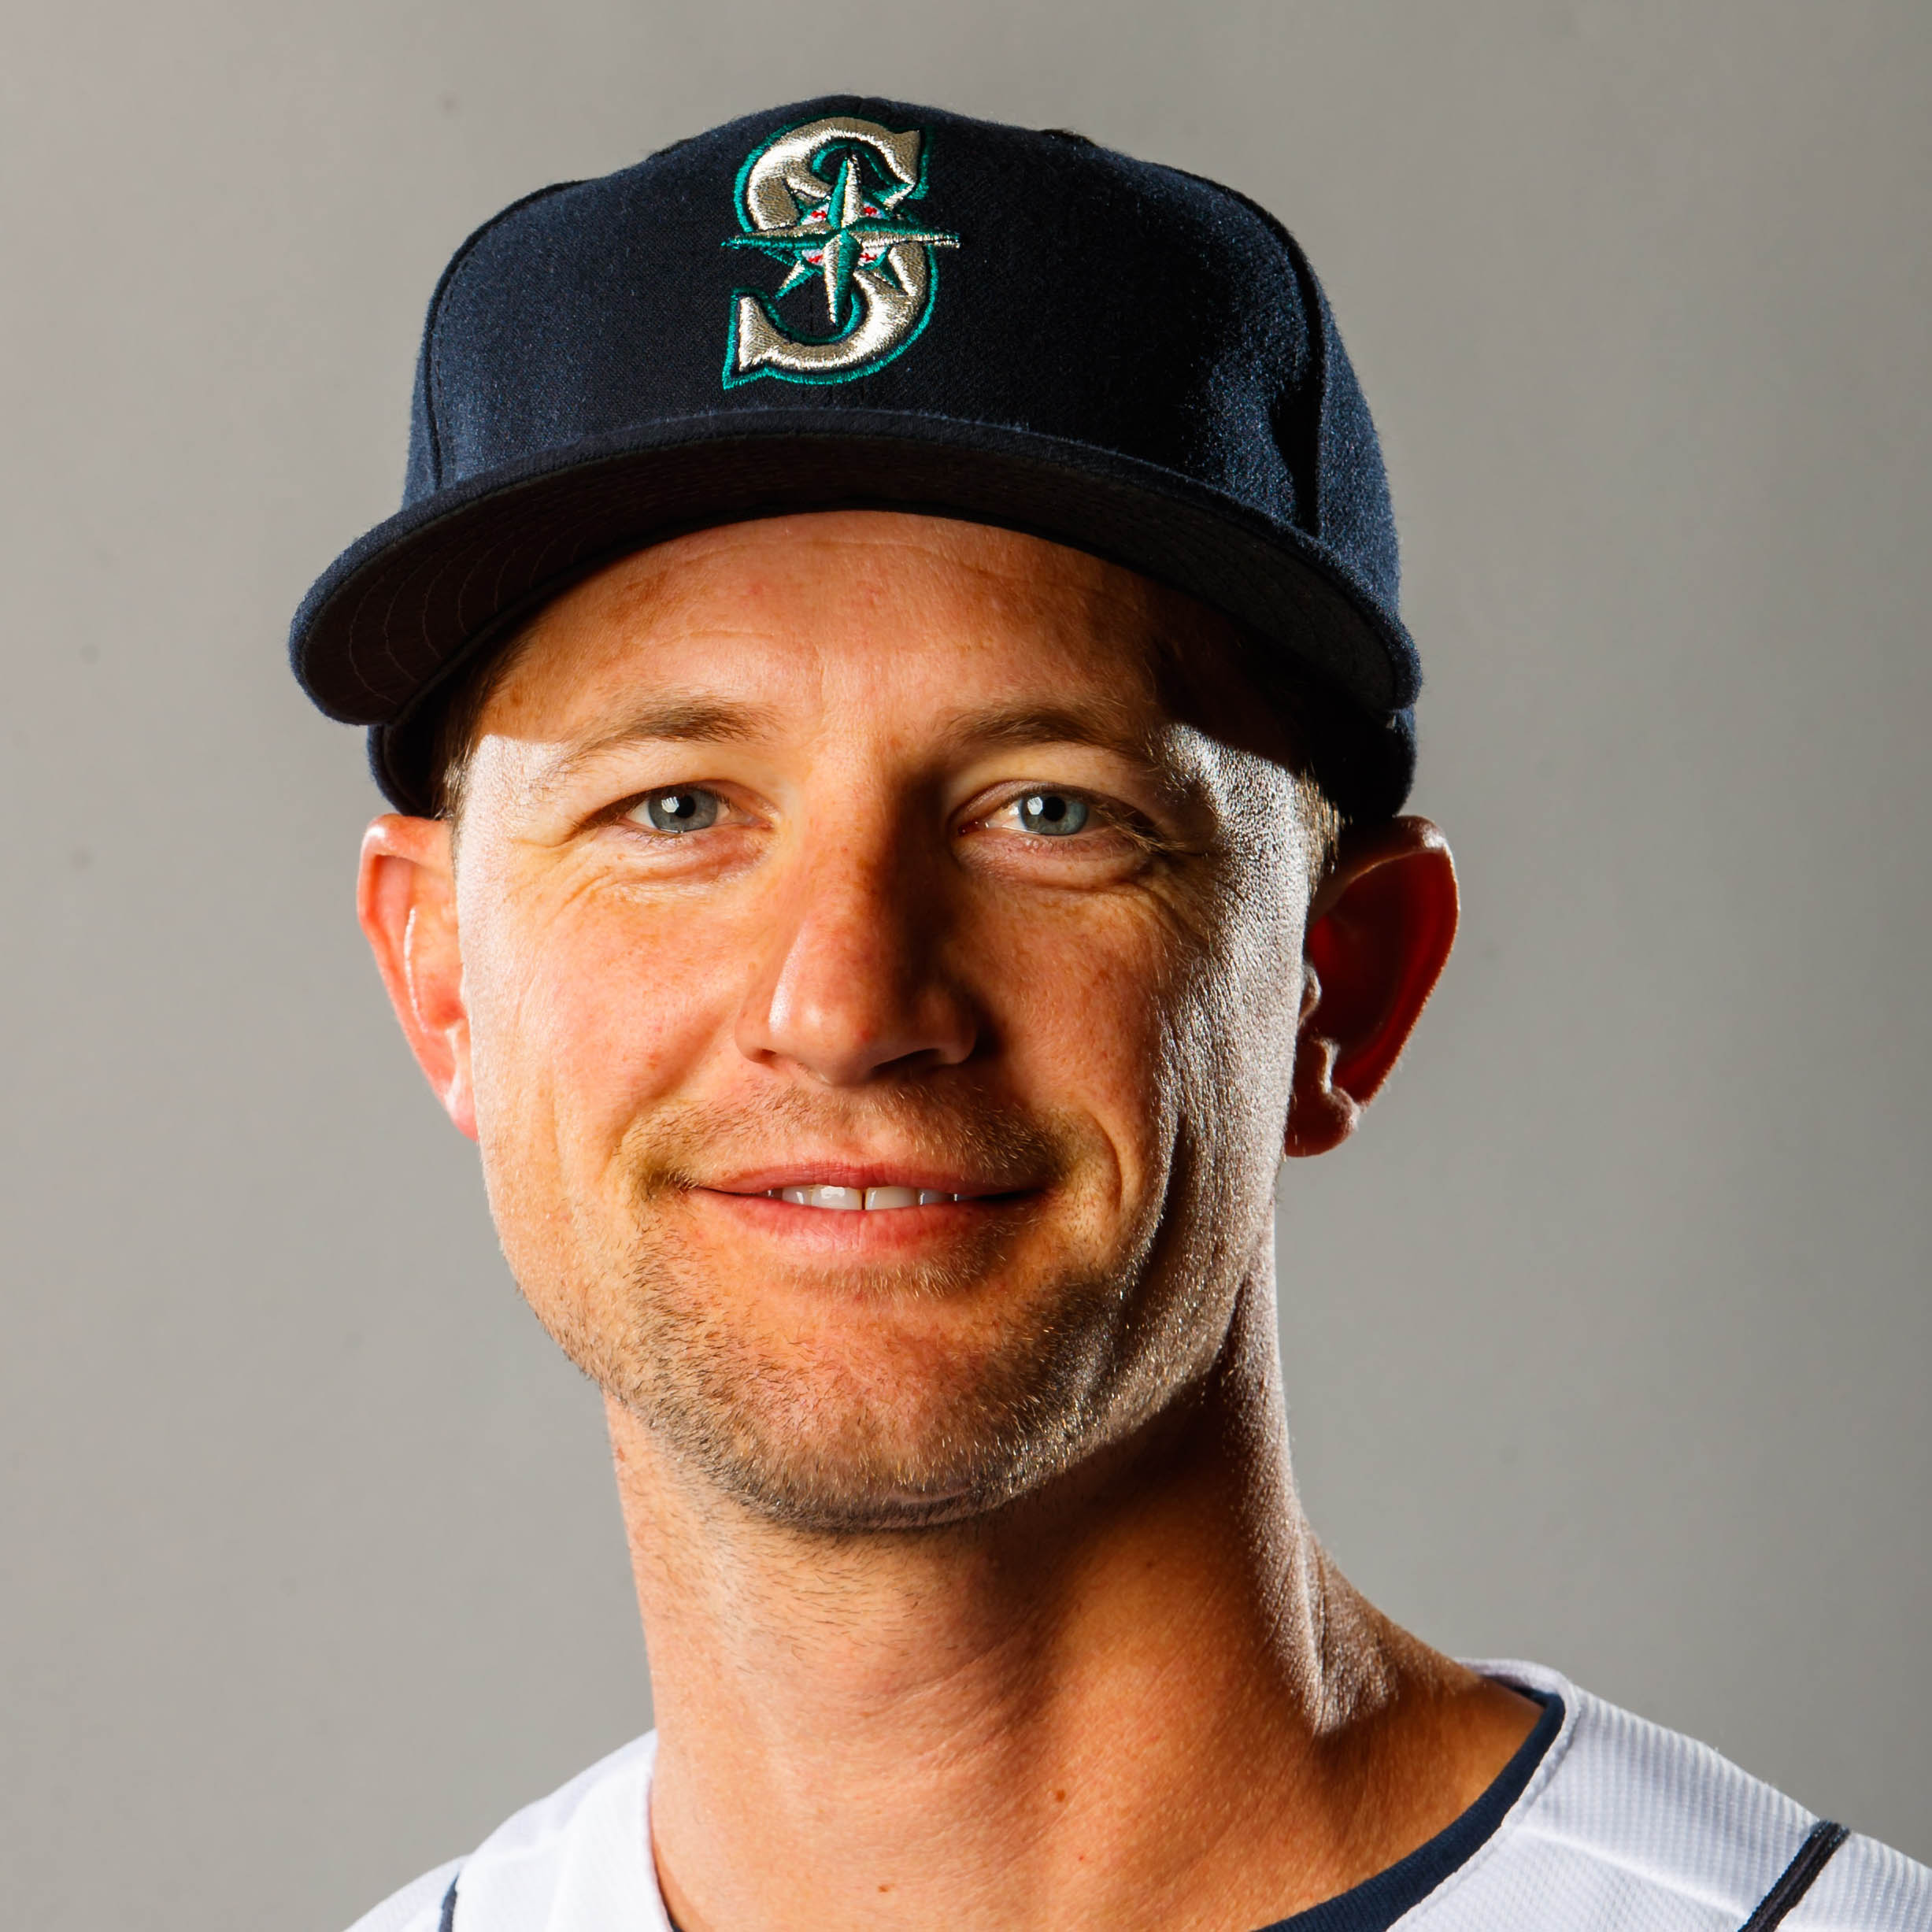 Mike Leake (R) Headshot